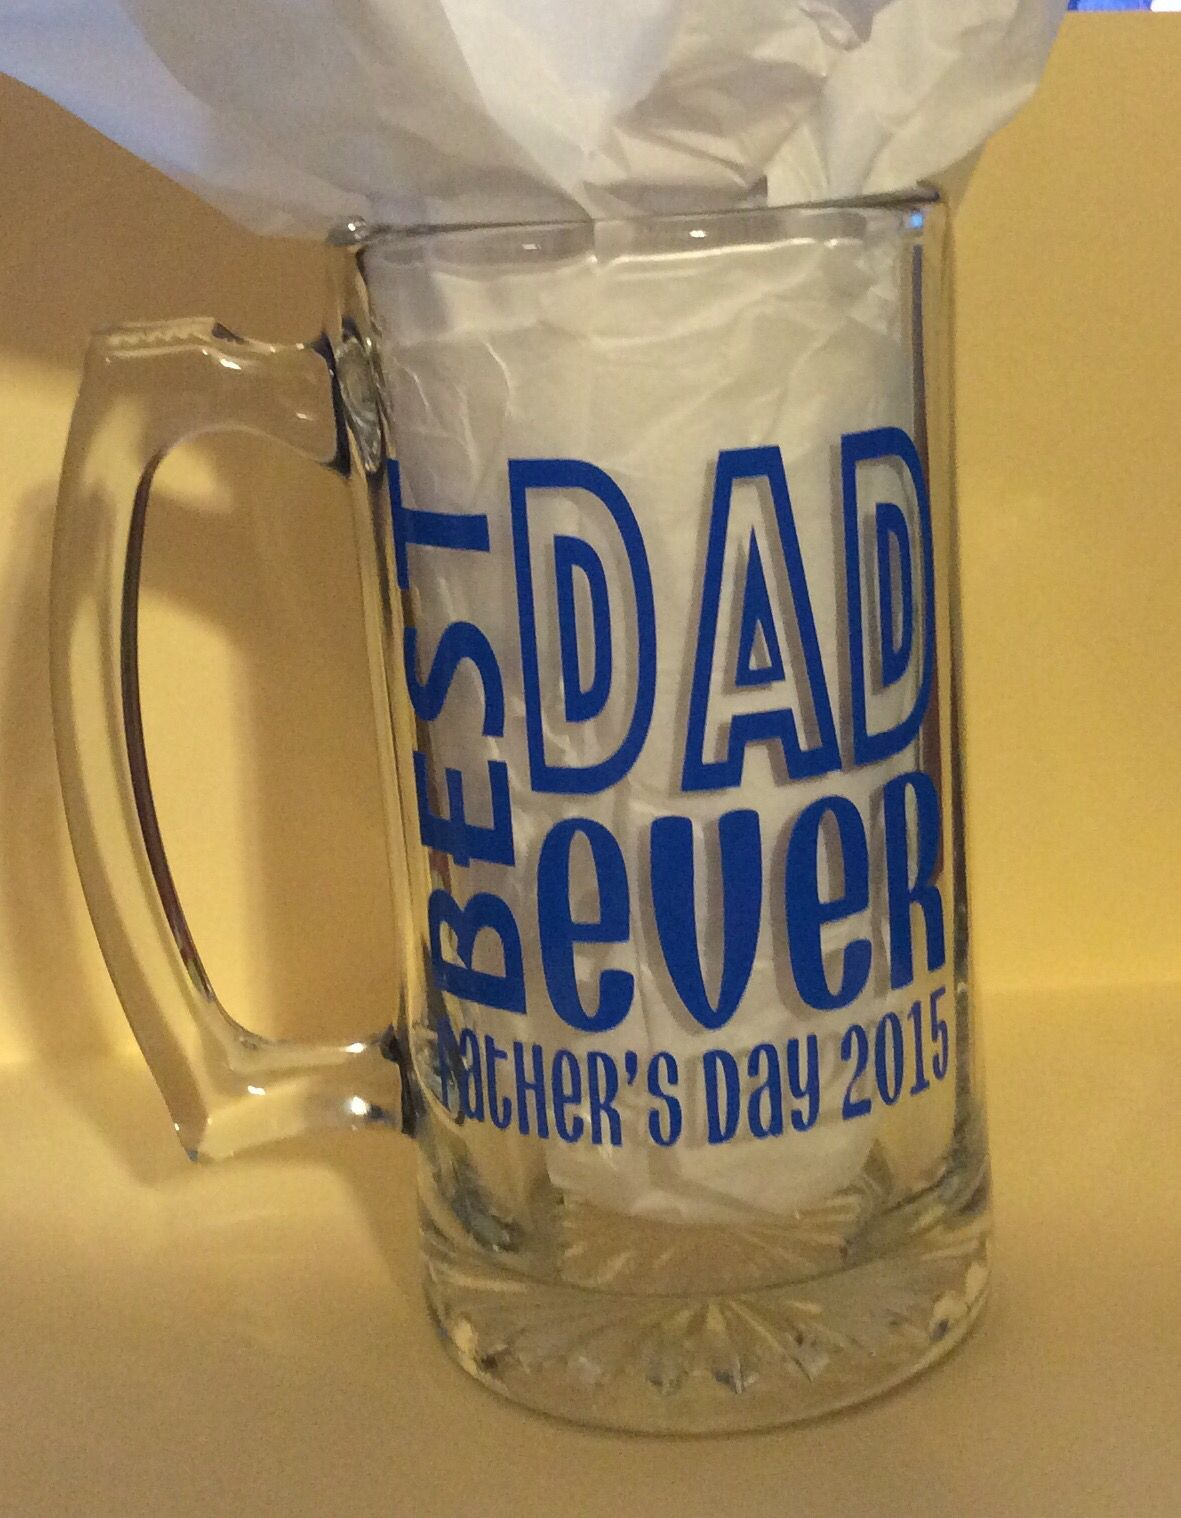 Father's Day 2015. I love these big mugs